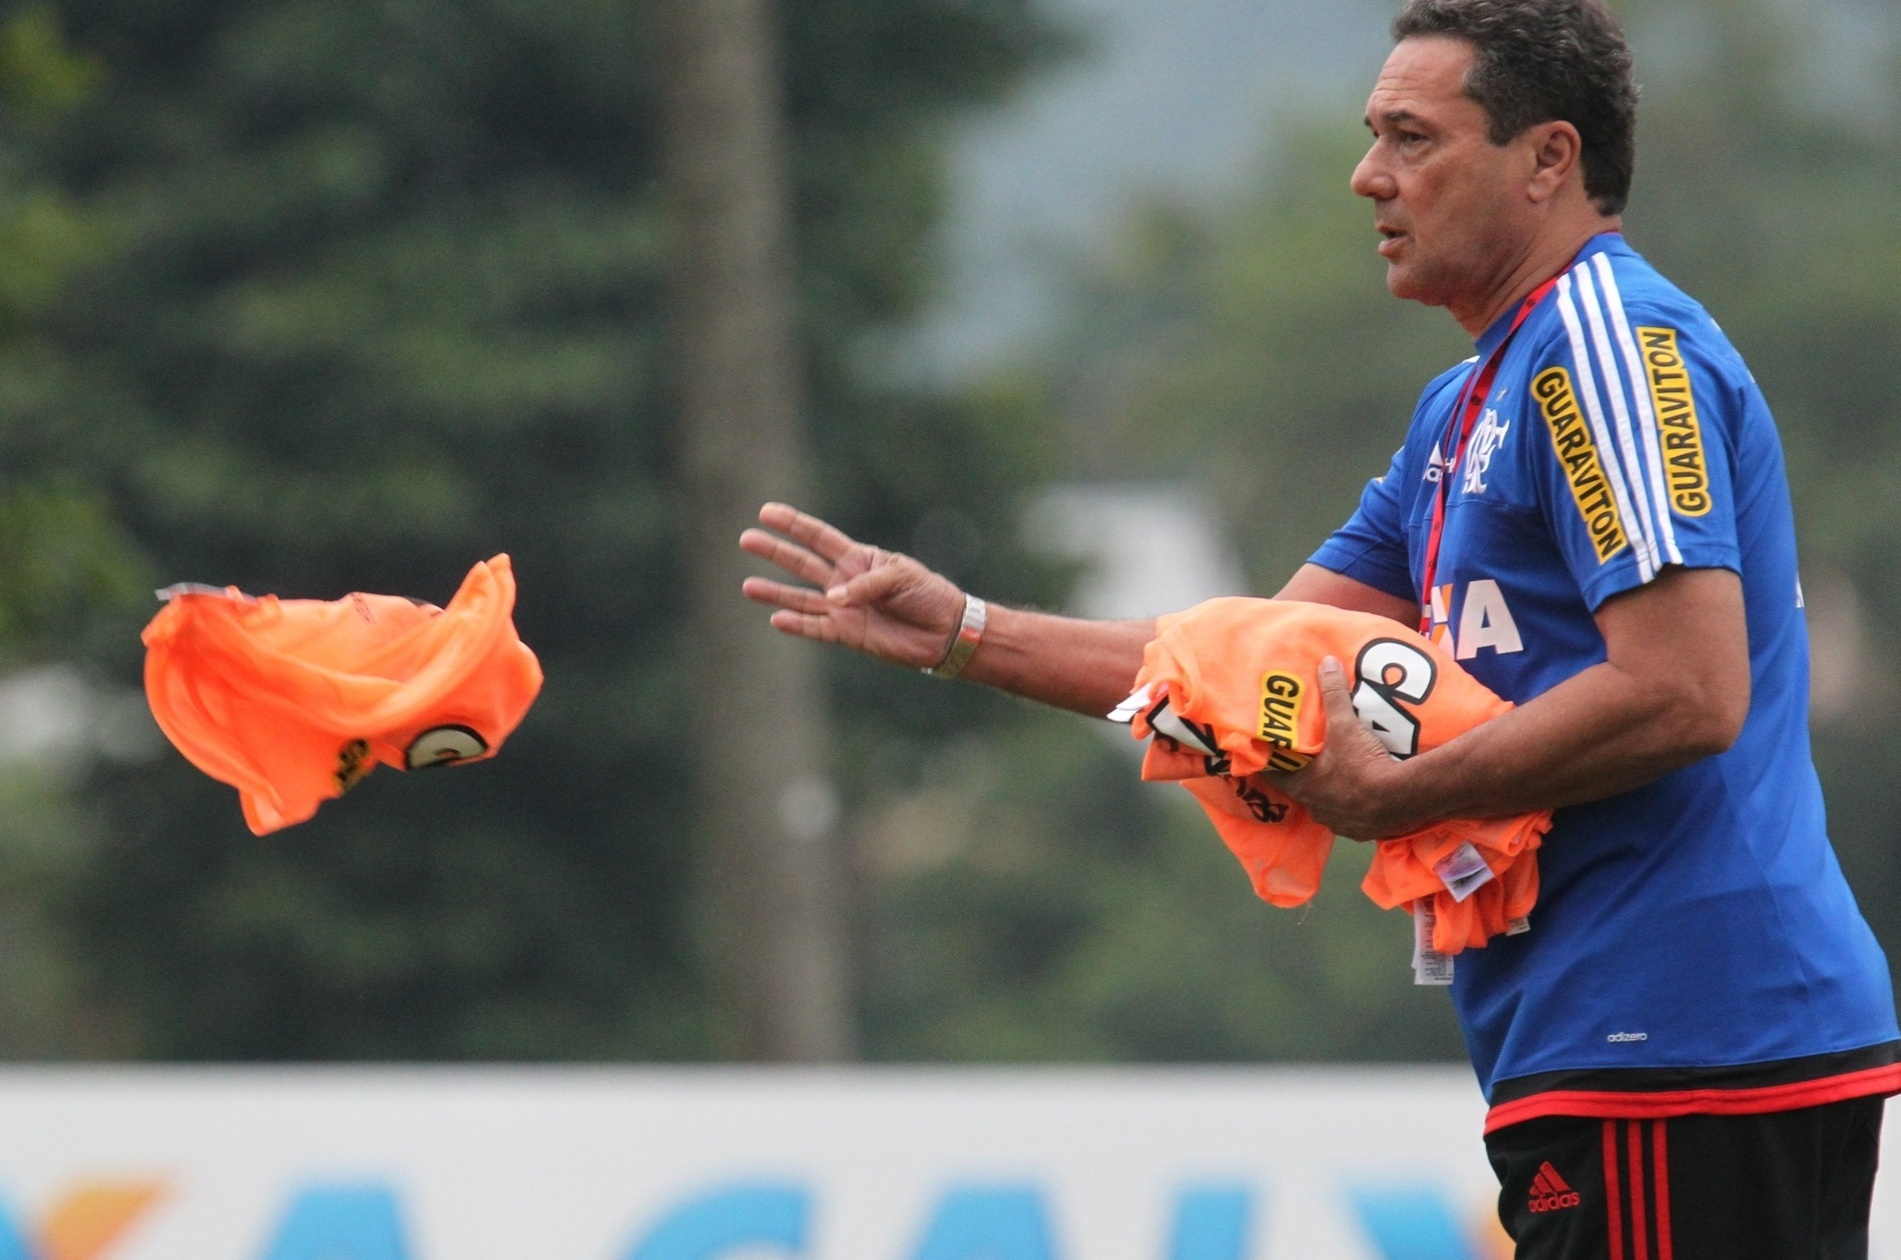 Vanderlei Luxemburgo tenta driblar as lesões e busca o time ideal do Flamengo